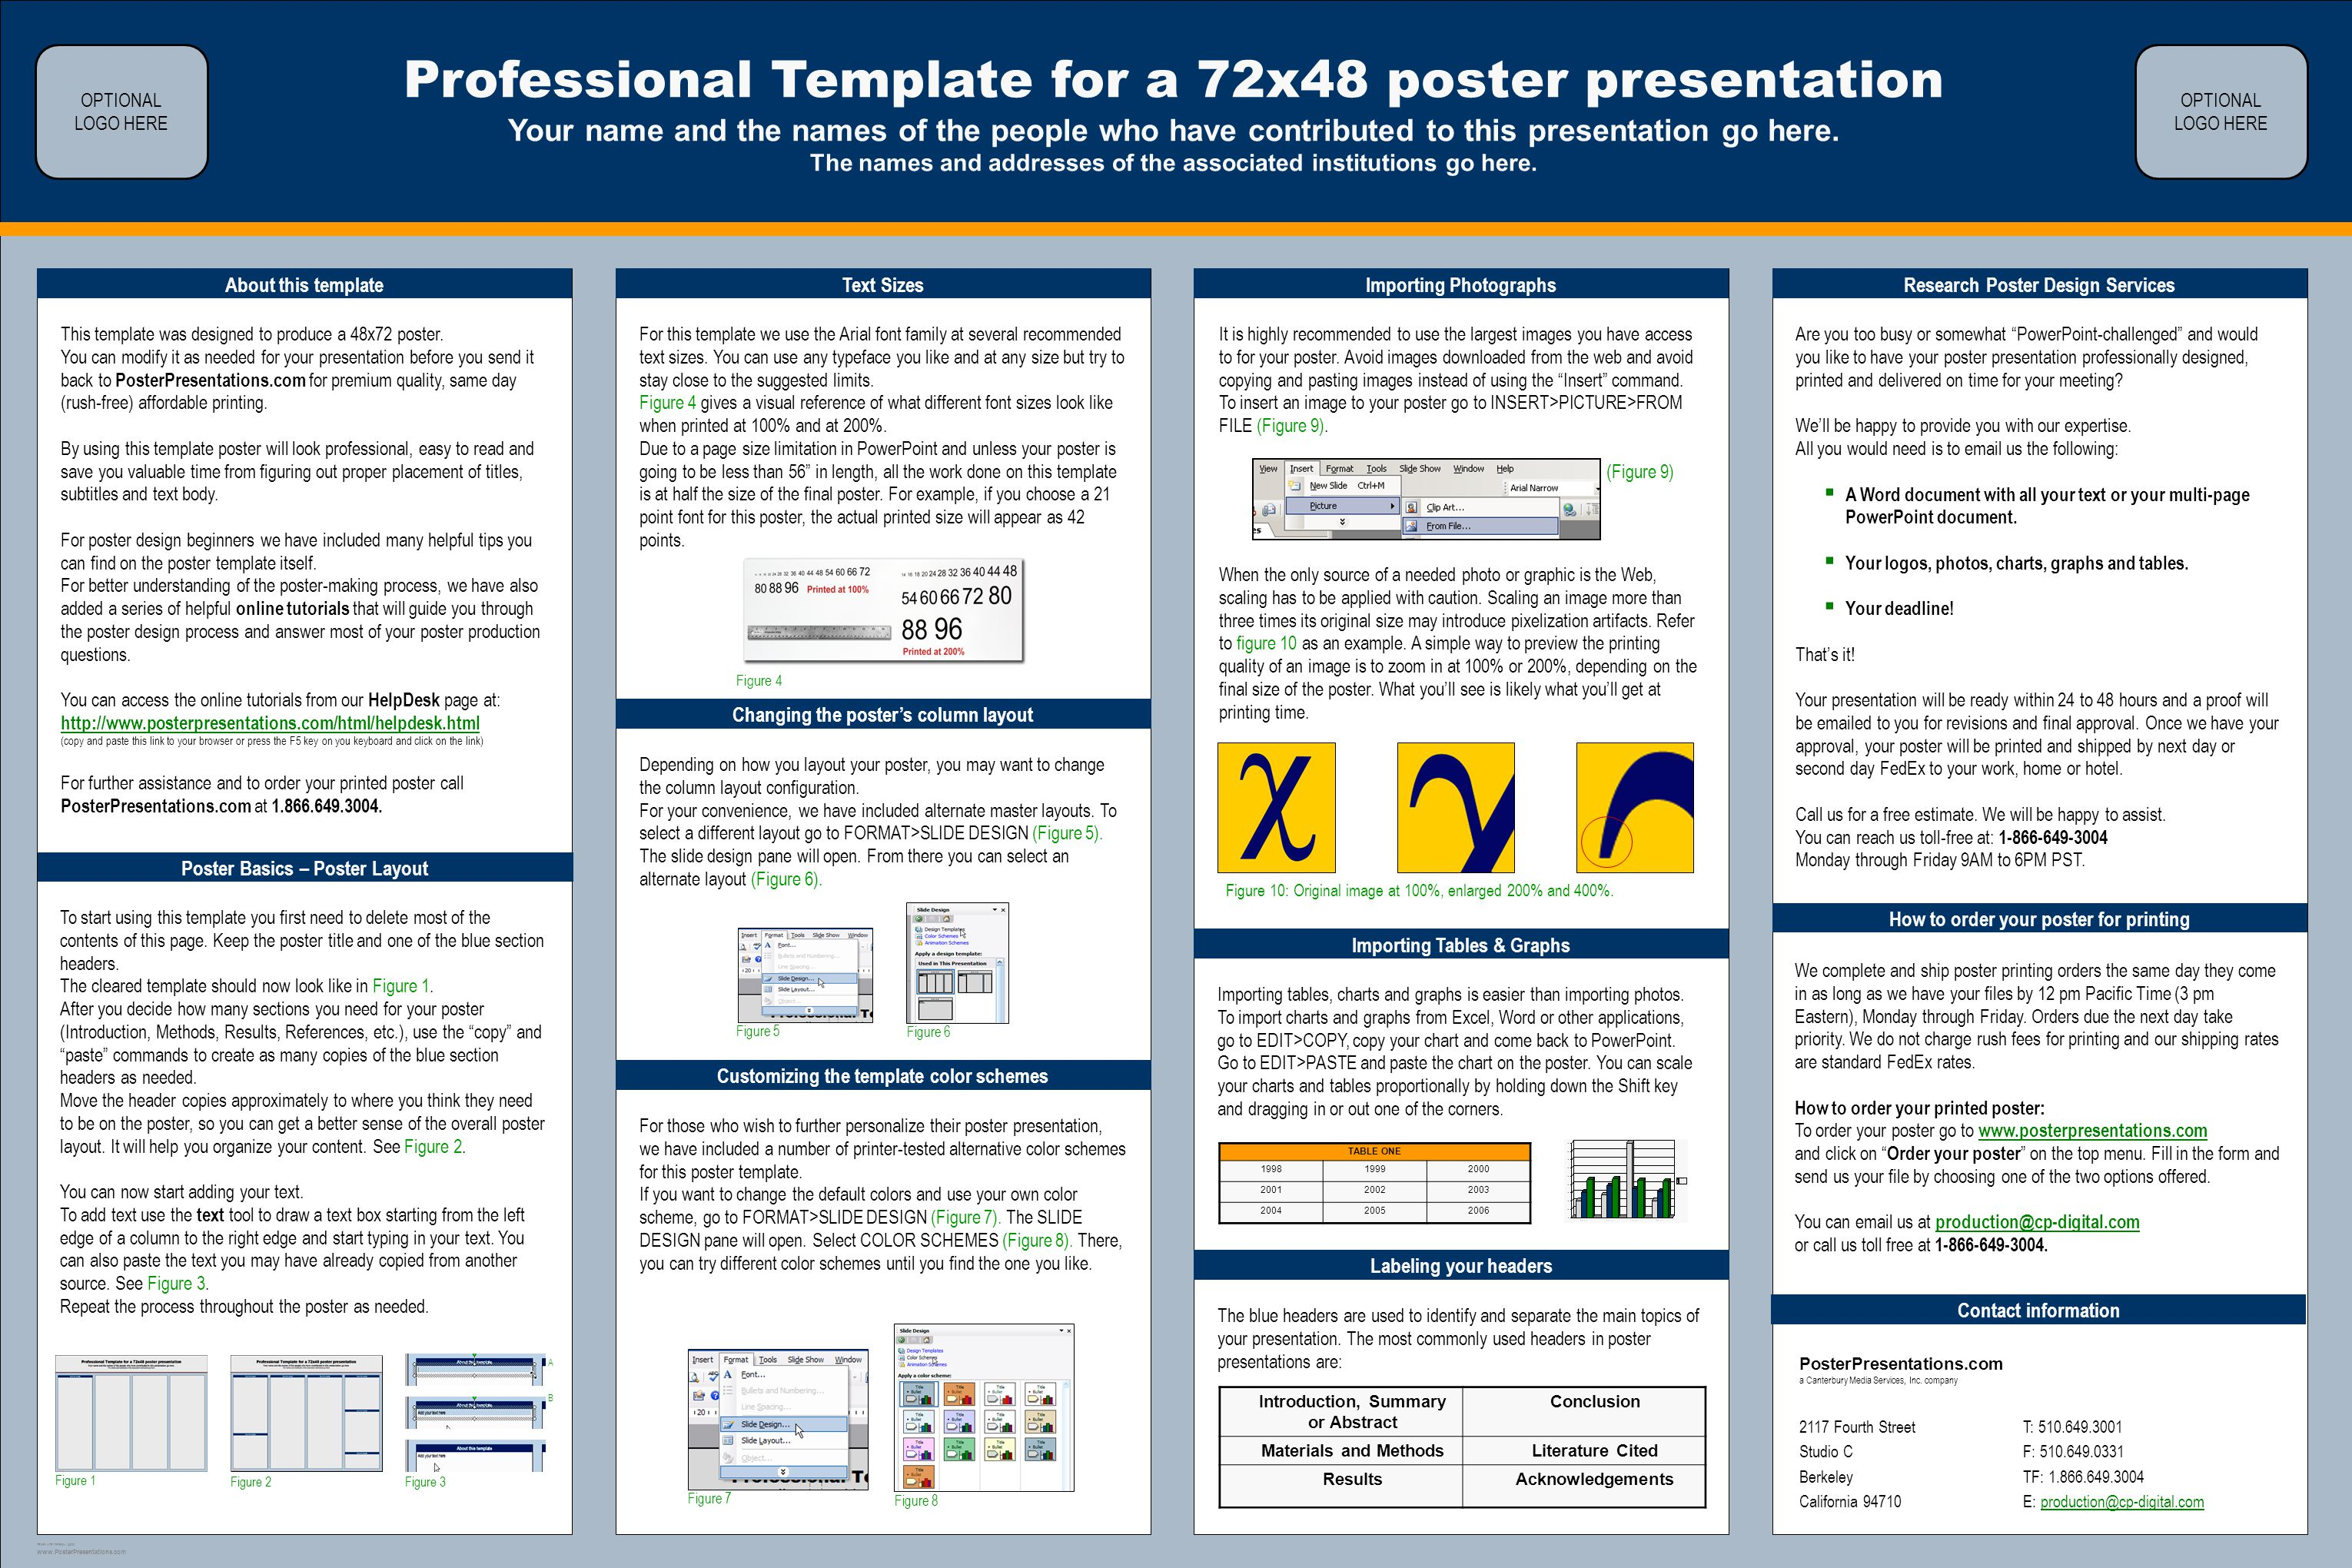 Professional Template for a 72x48 poster presentation - ppt download